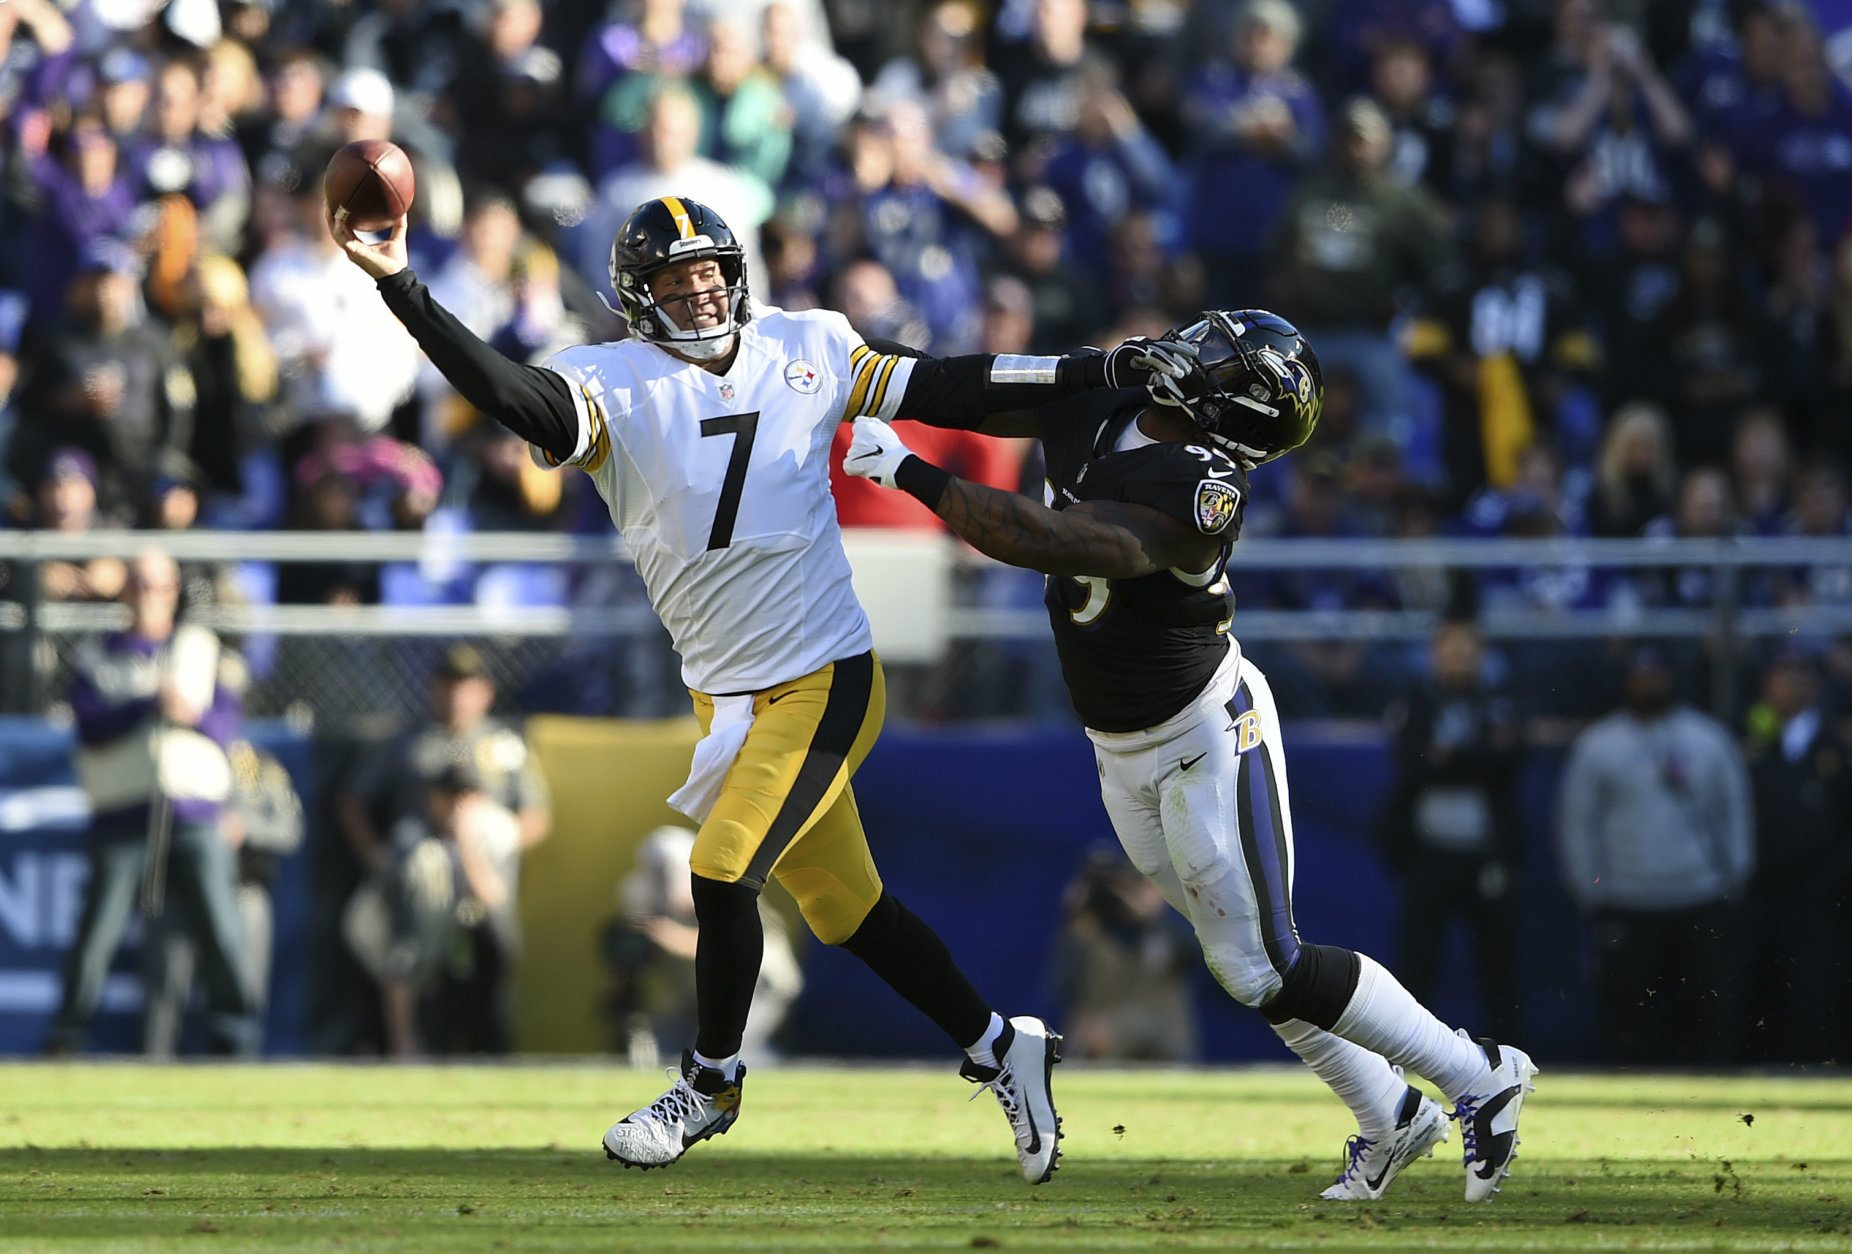 Pittsburgh Steelers quarterback Ben Roethlisberger (7) throws a pass as he tries to avoid Baltimore Ravens outside linebacker Matt Judon in the first half of an NFL football game, Sunday, Nov. 4, 2018, in Baltimore. (AP Photo/Gail Burton)a